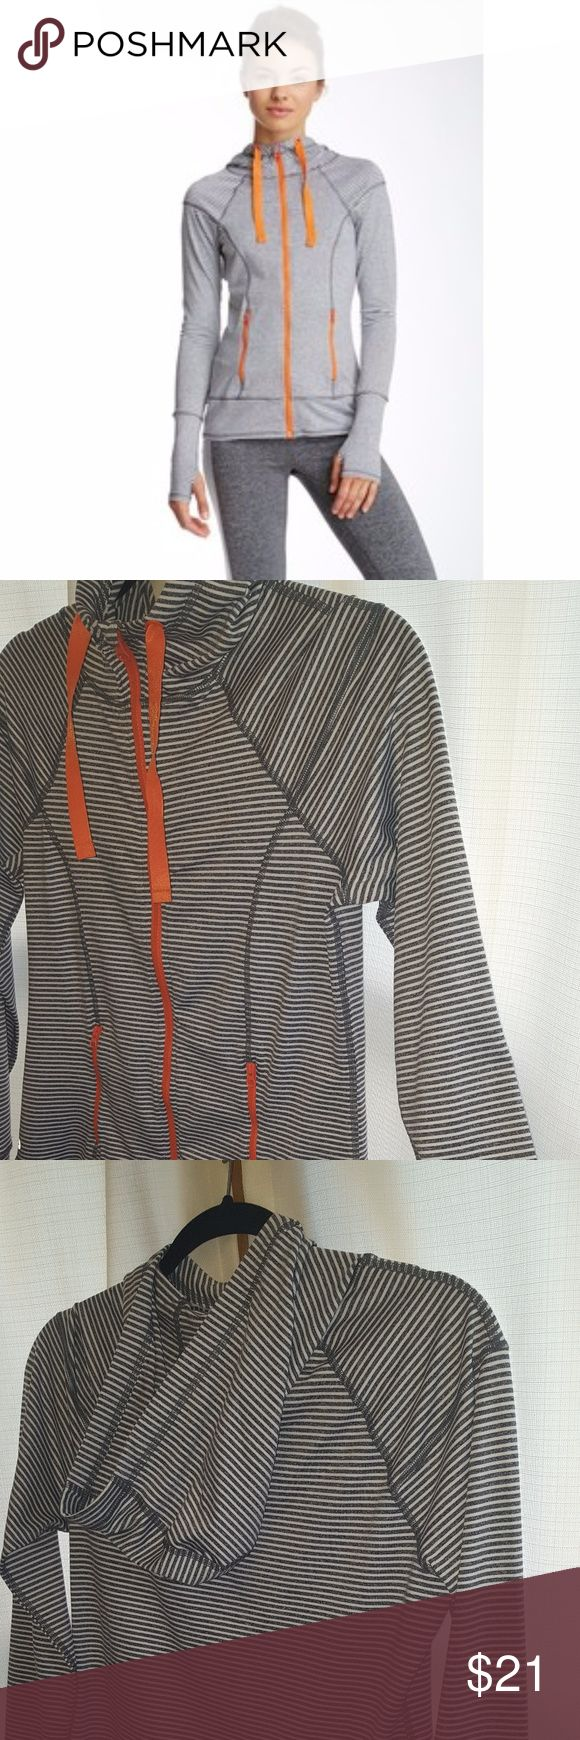 90 Degree by Reflex Striped Hoodie Super cute and comfy with thumb holes. Worn a couple of times, like new! 90 Degree By Reflex Tops Sweatshirts & Hoodies